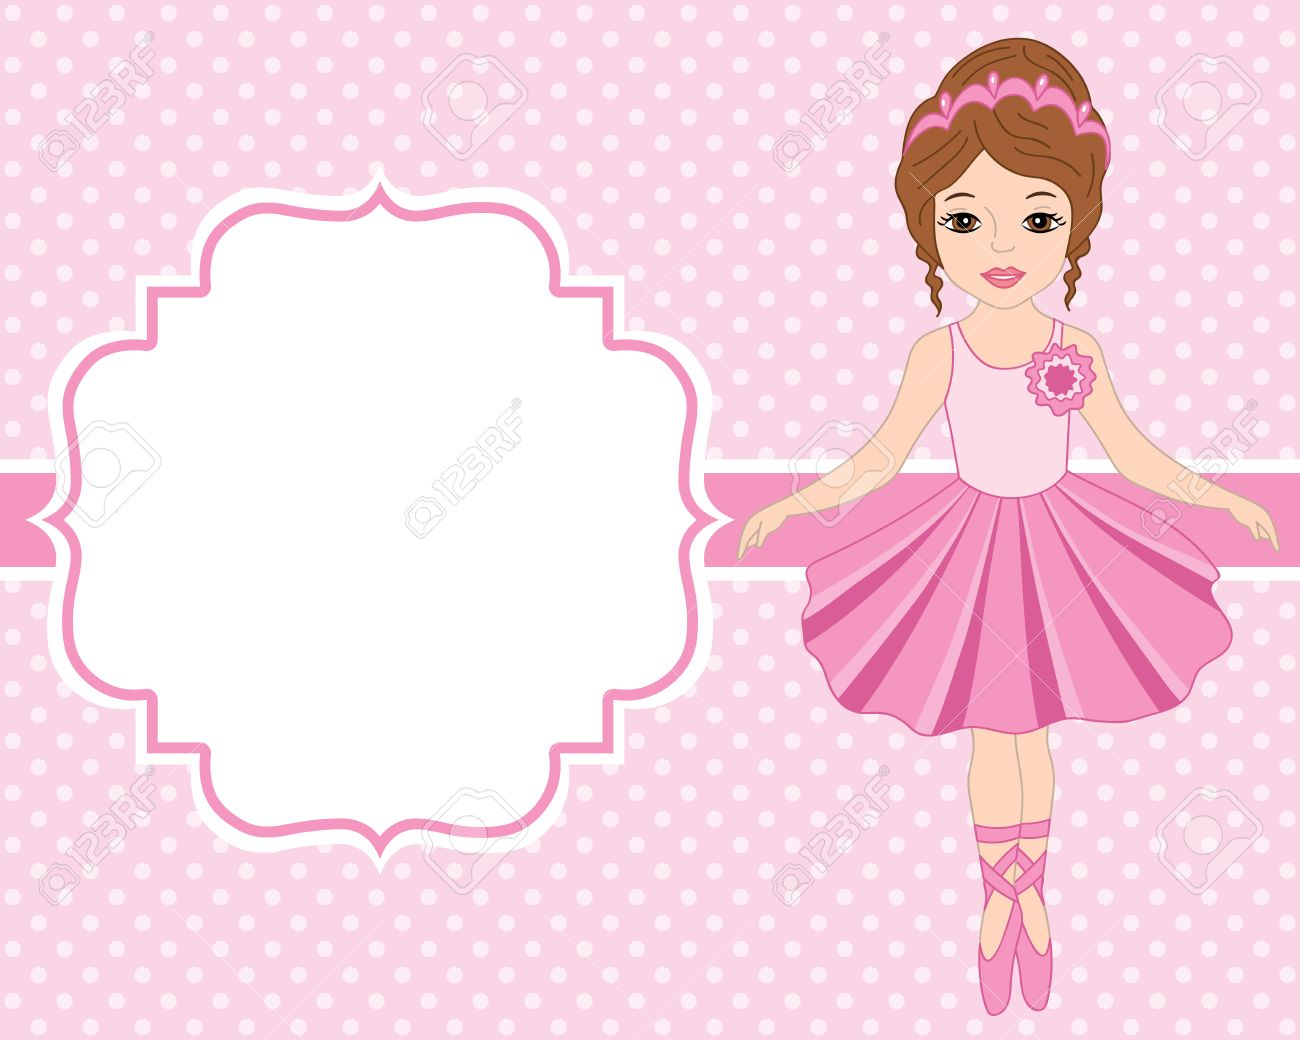 vector card template with ballerina on polka dot background